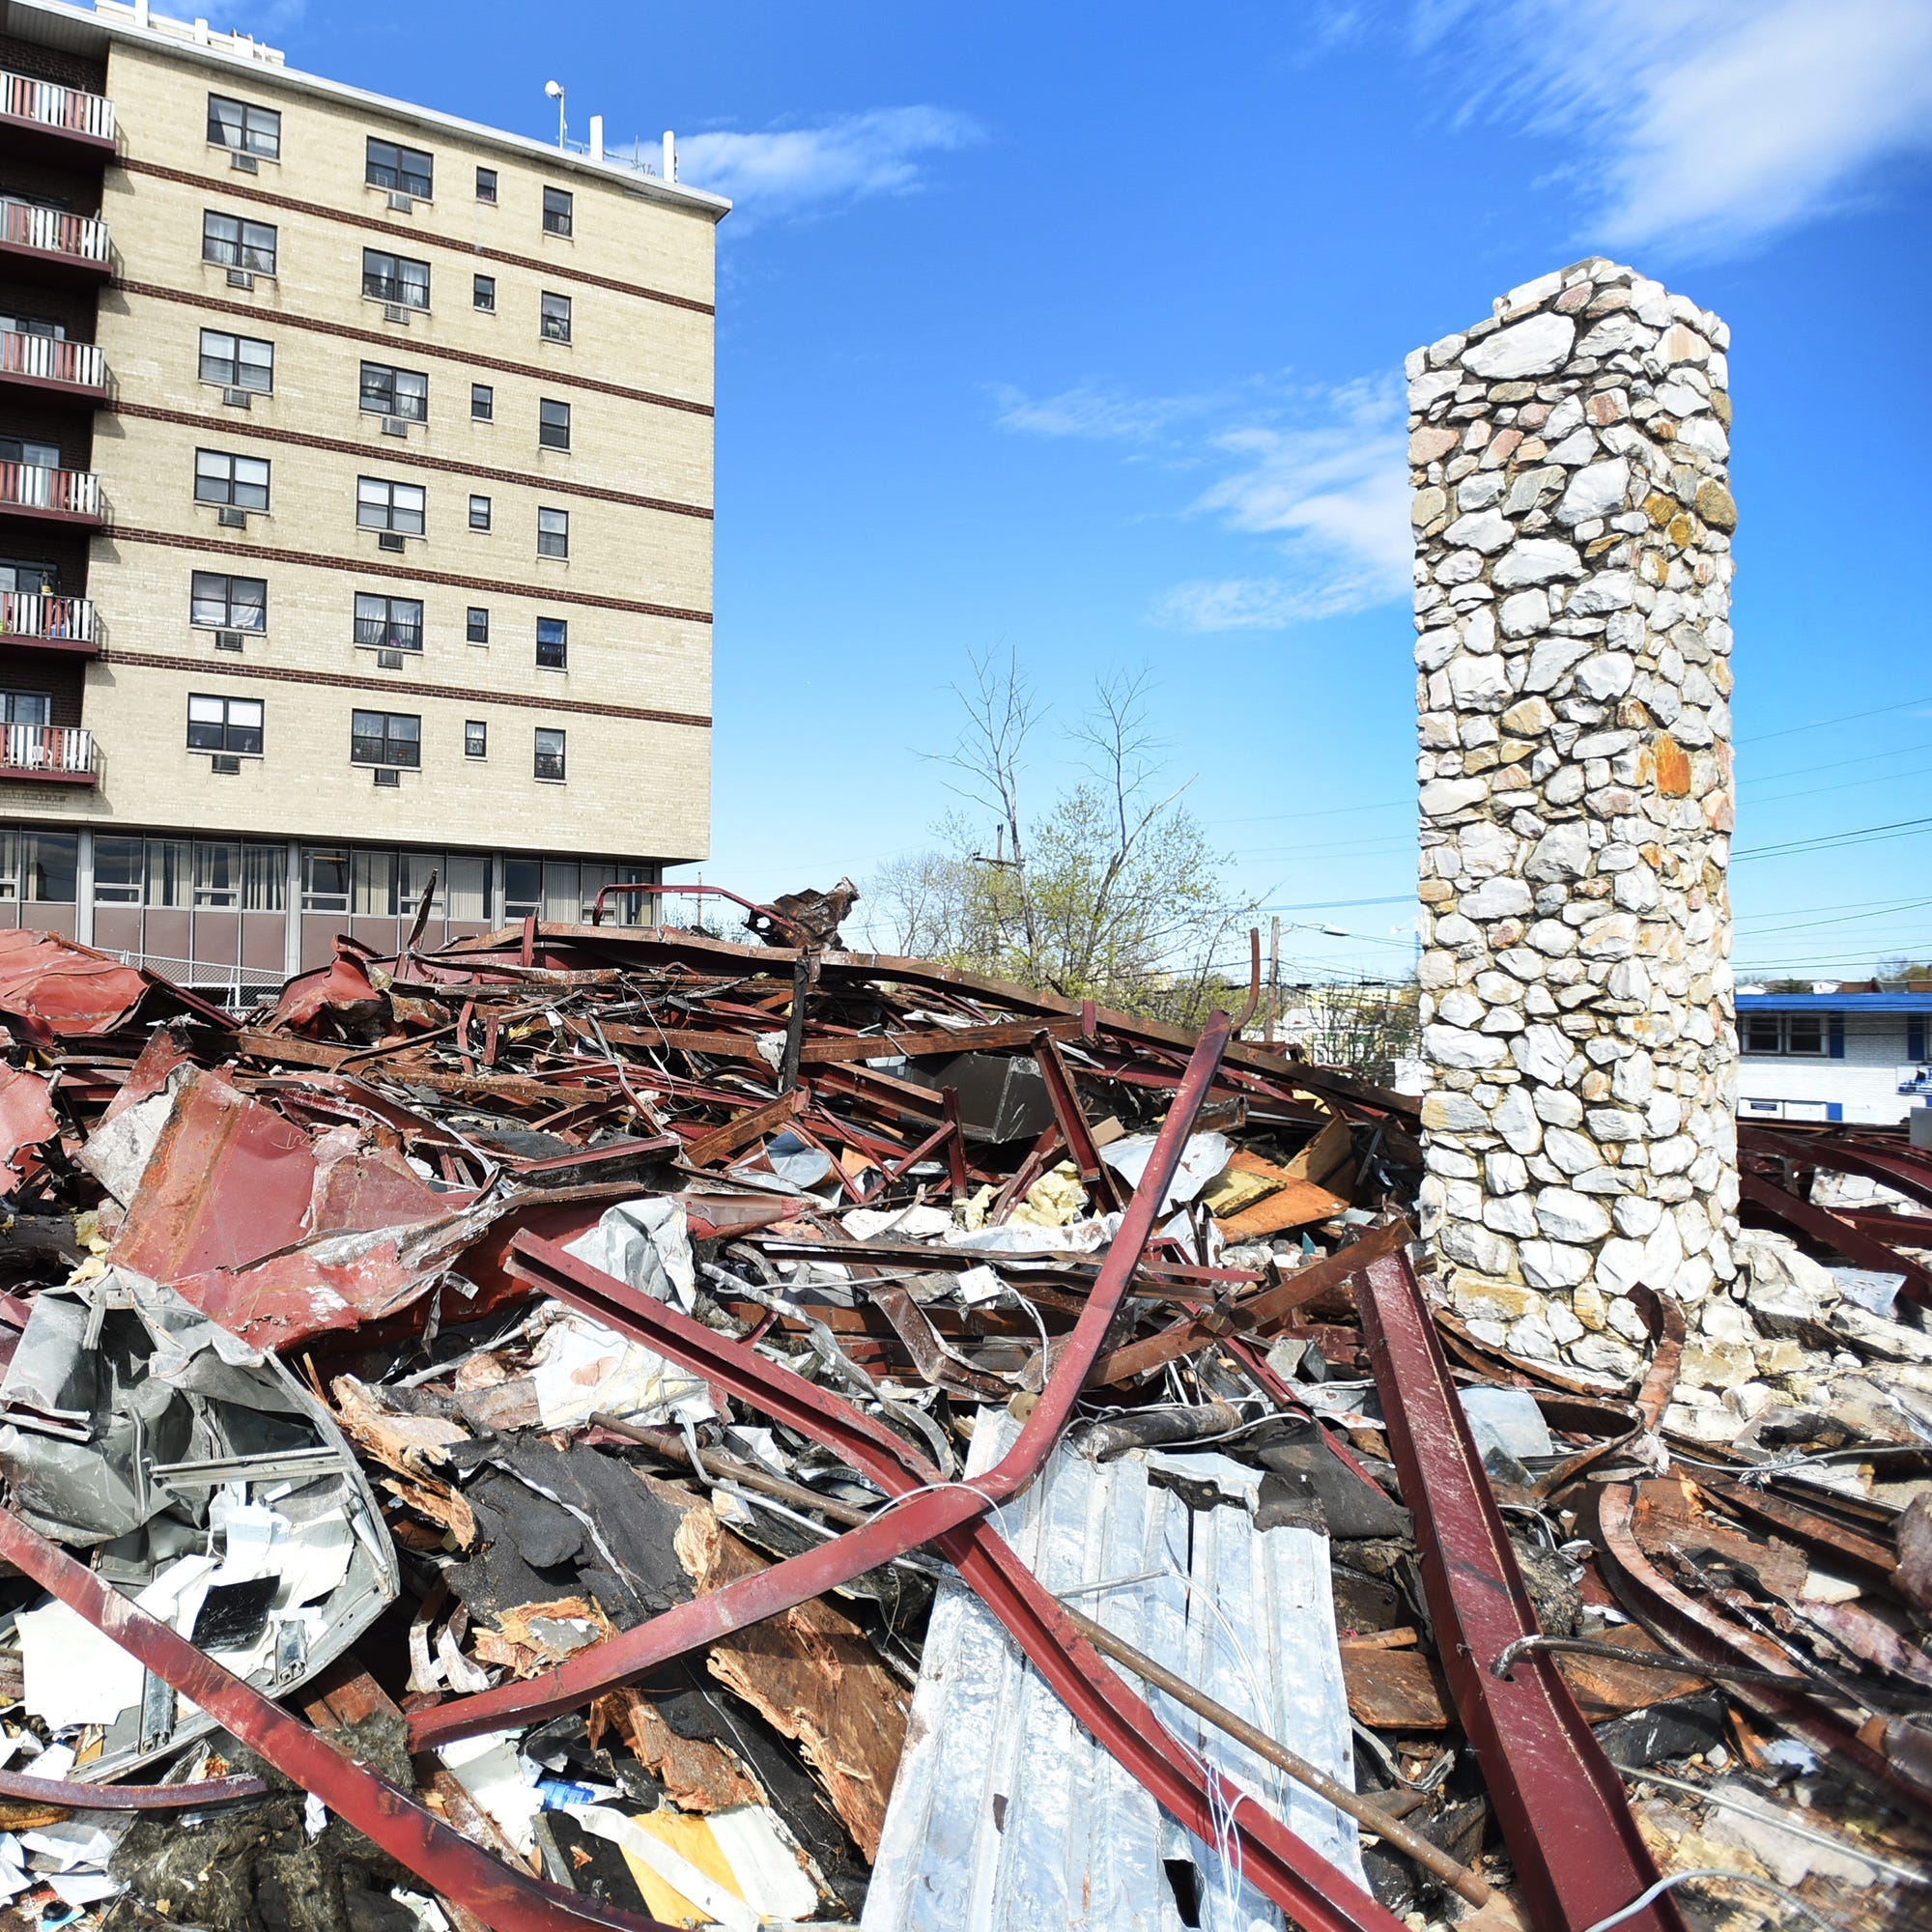 Arena Diner, where the elite met to eat, is reduced to rubble